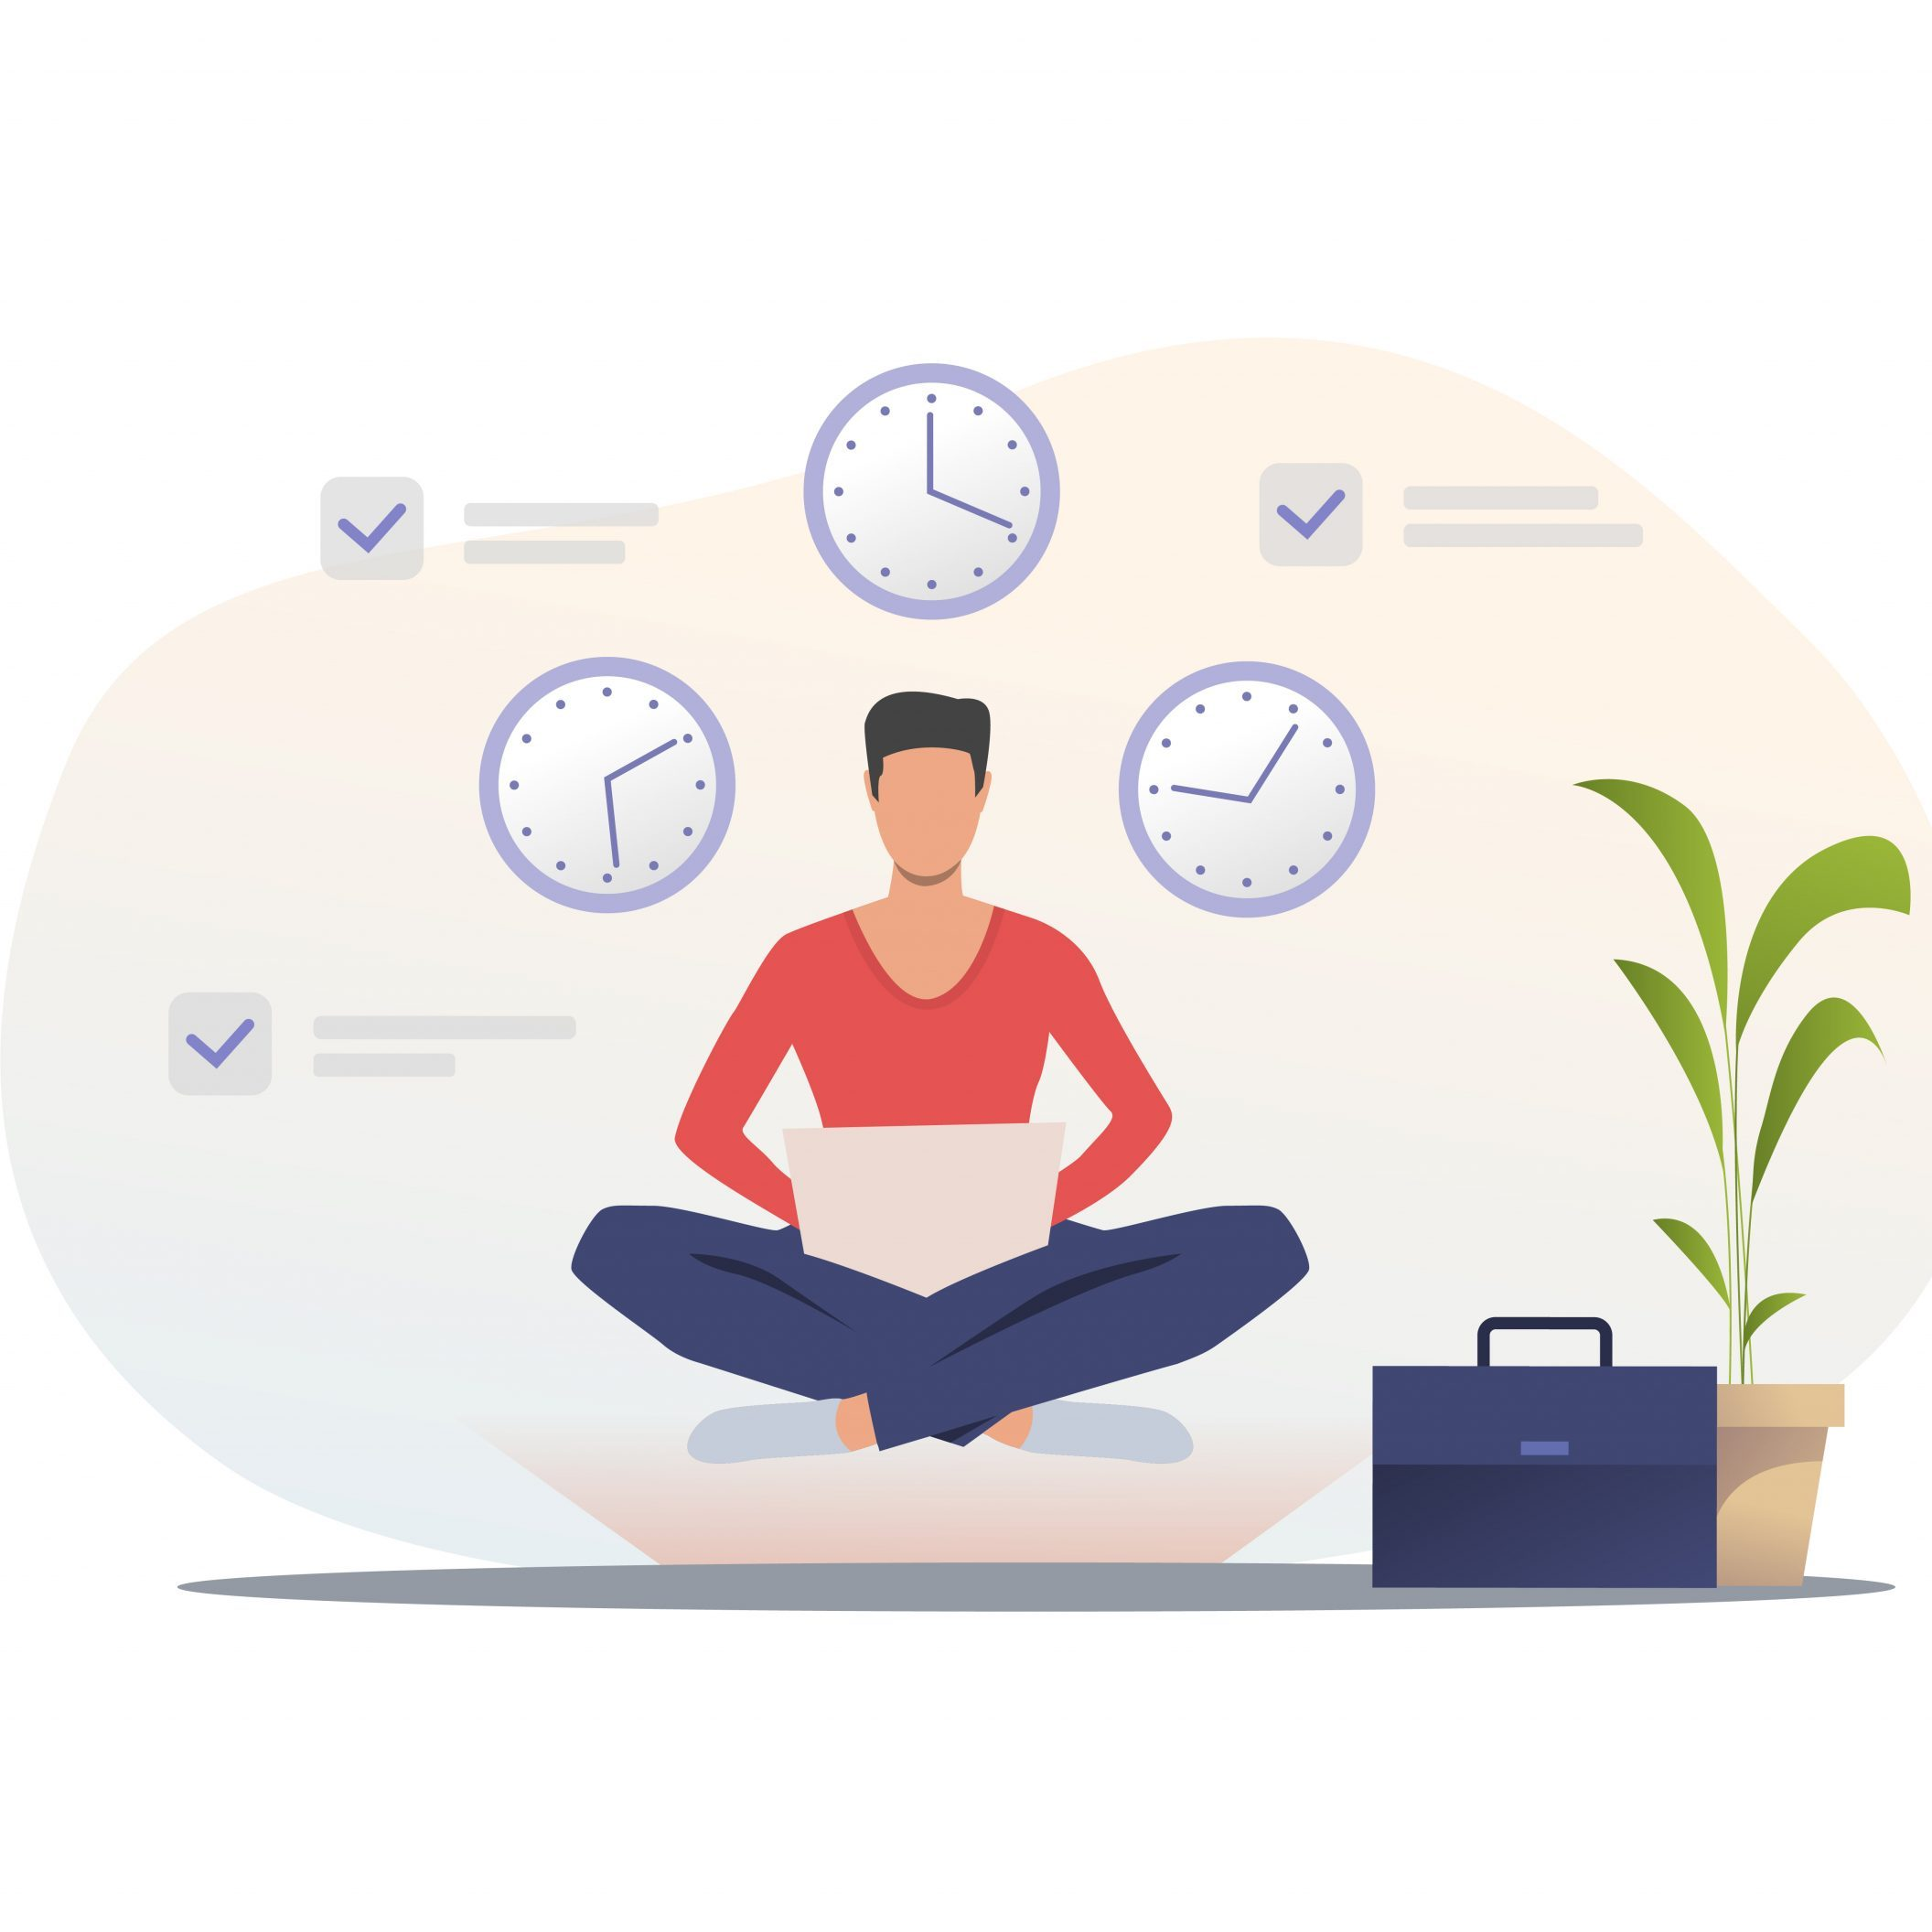 Man in casual using laptop. Freelancer sitting in lotus position, clock, briefcase. Time management concept. Vector illustration for presentation slide template or website design